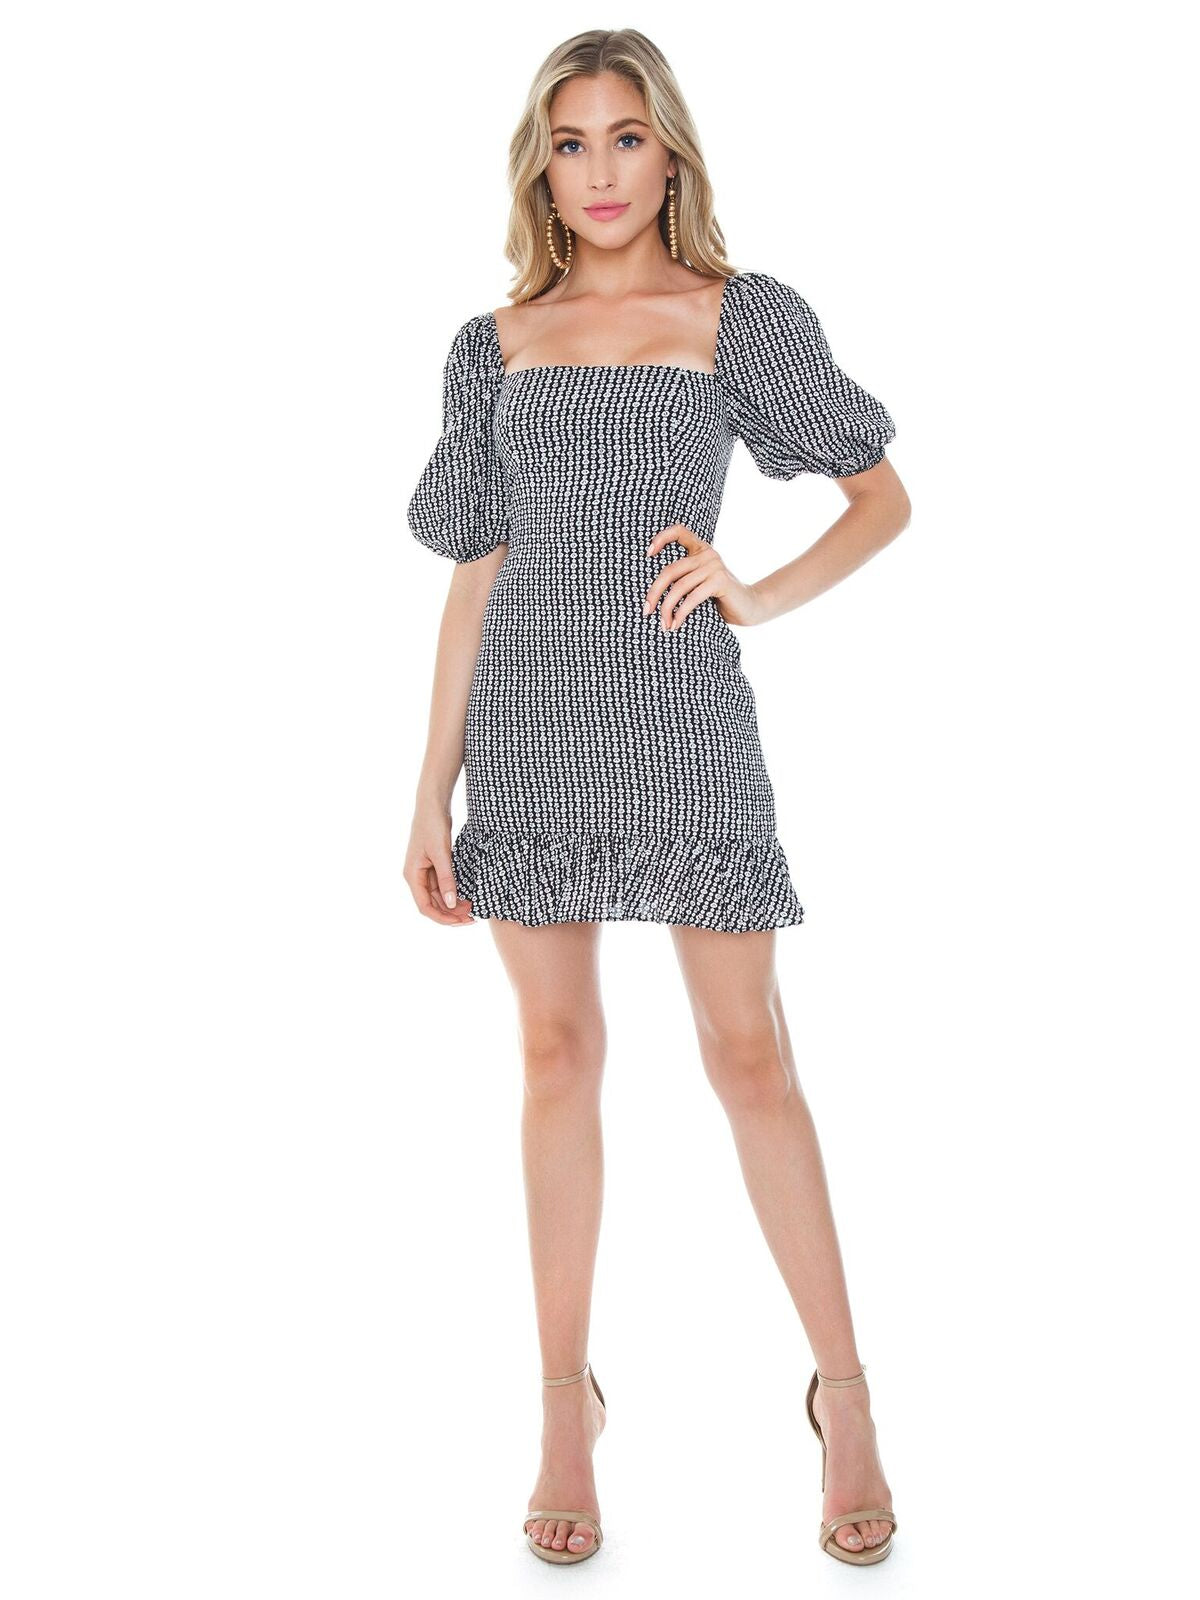 Girl outfit in a dress rental from Lani The Label called Romee Dress